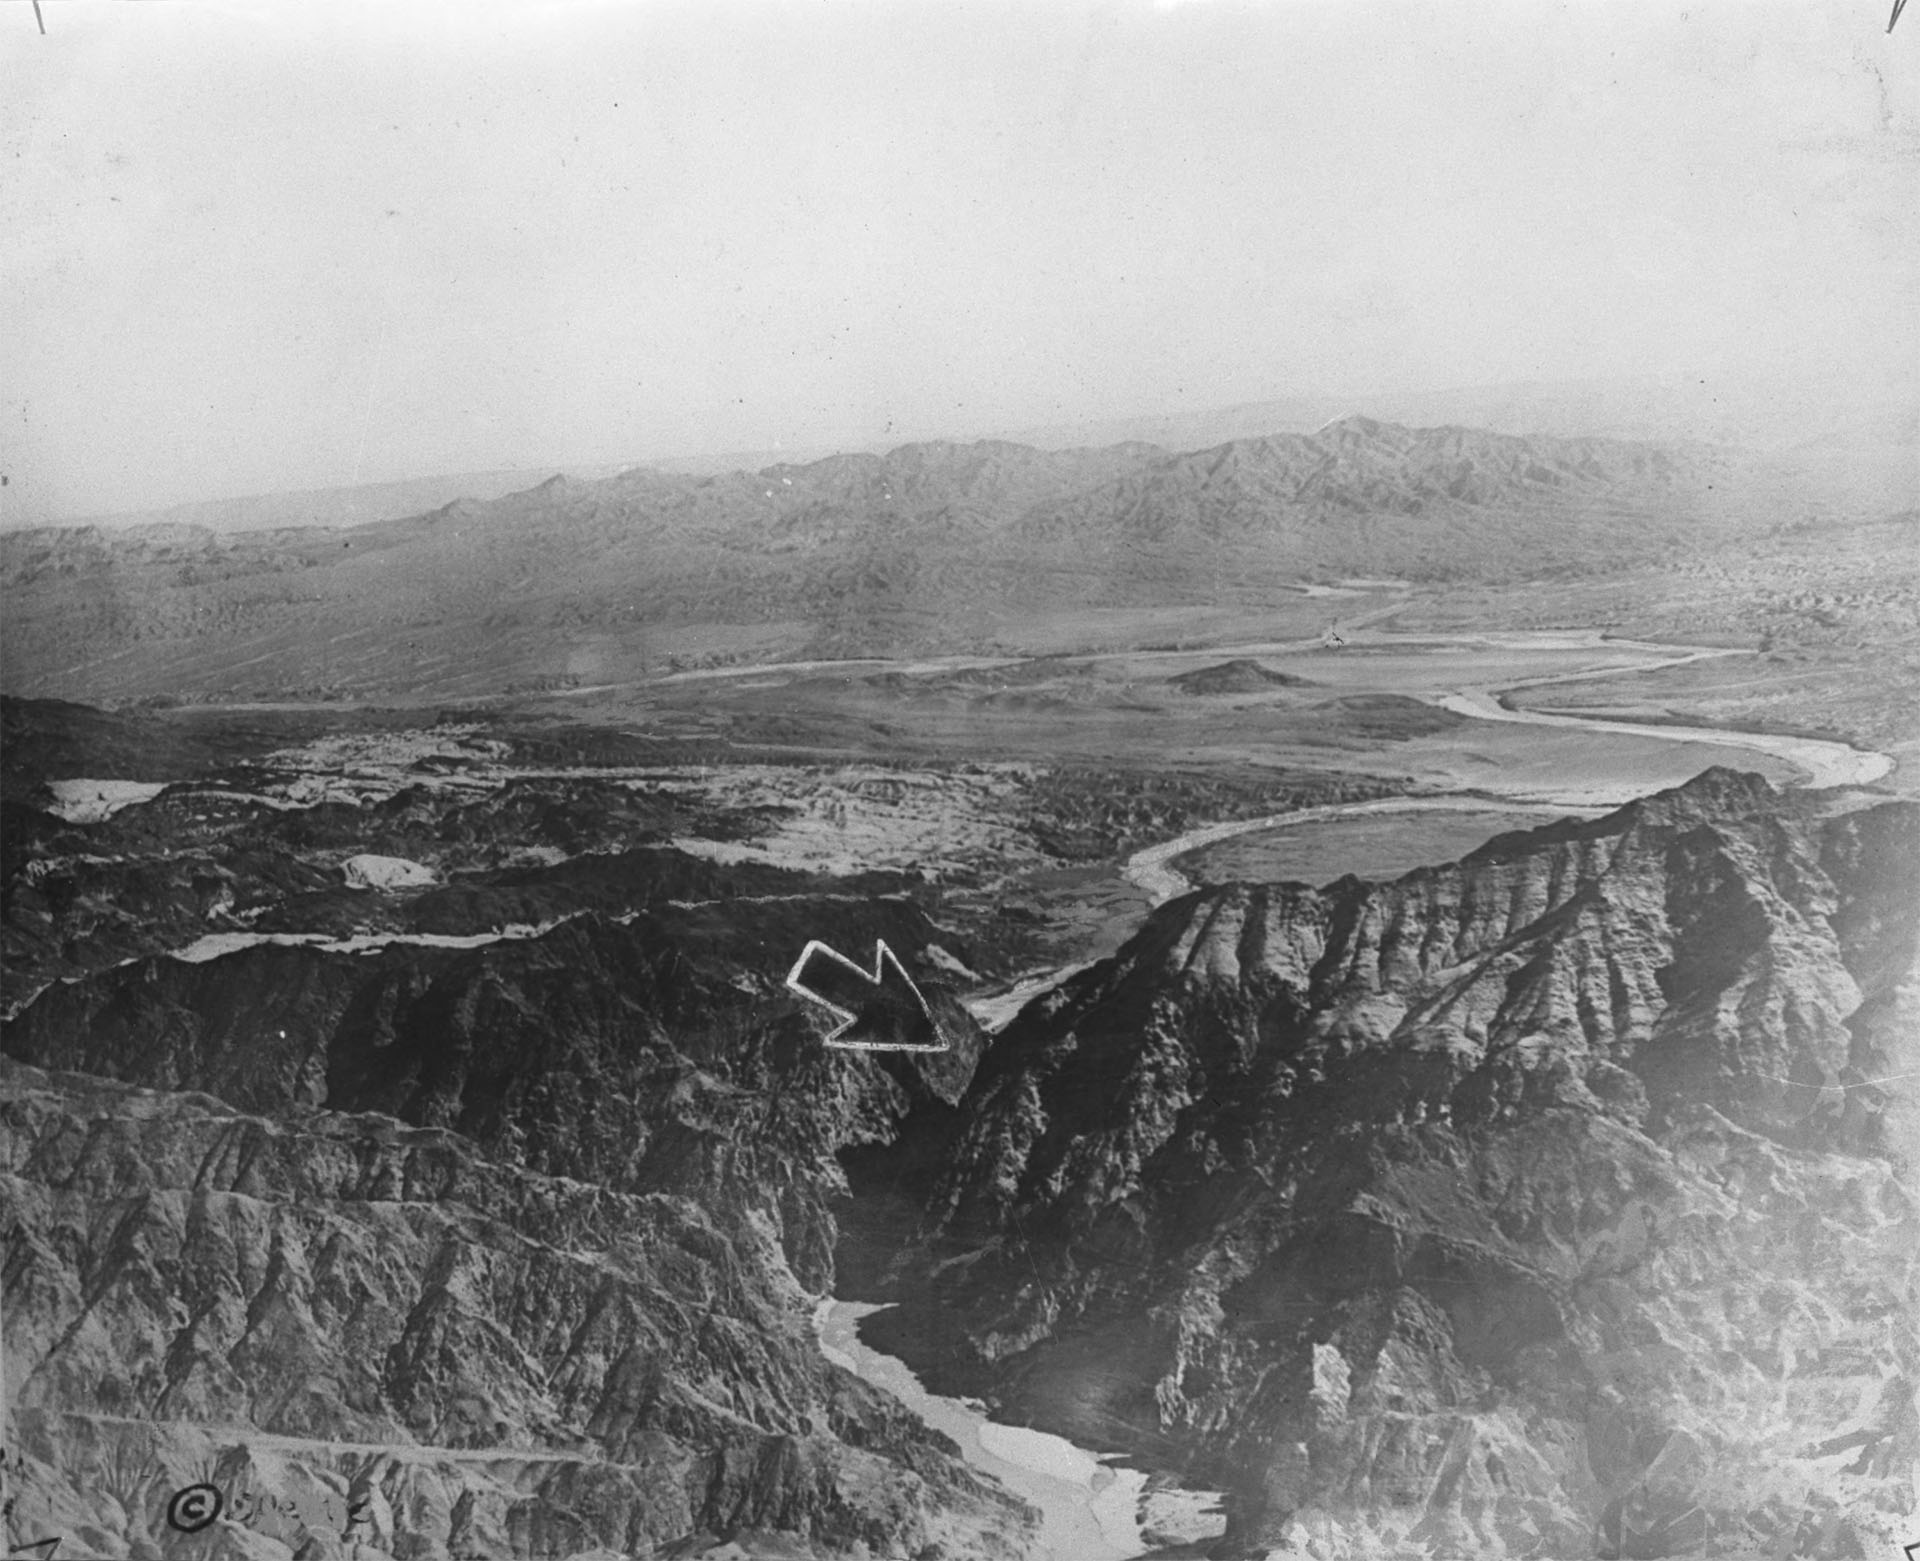 Photo of area where Boulder [Hoover] Dam site proposed, circa 1921